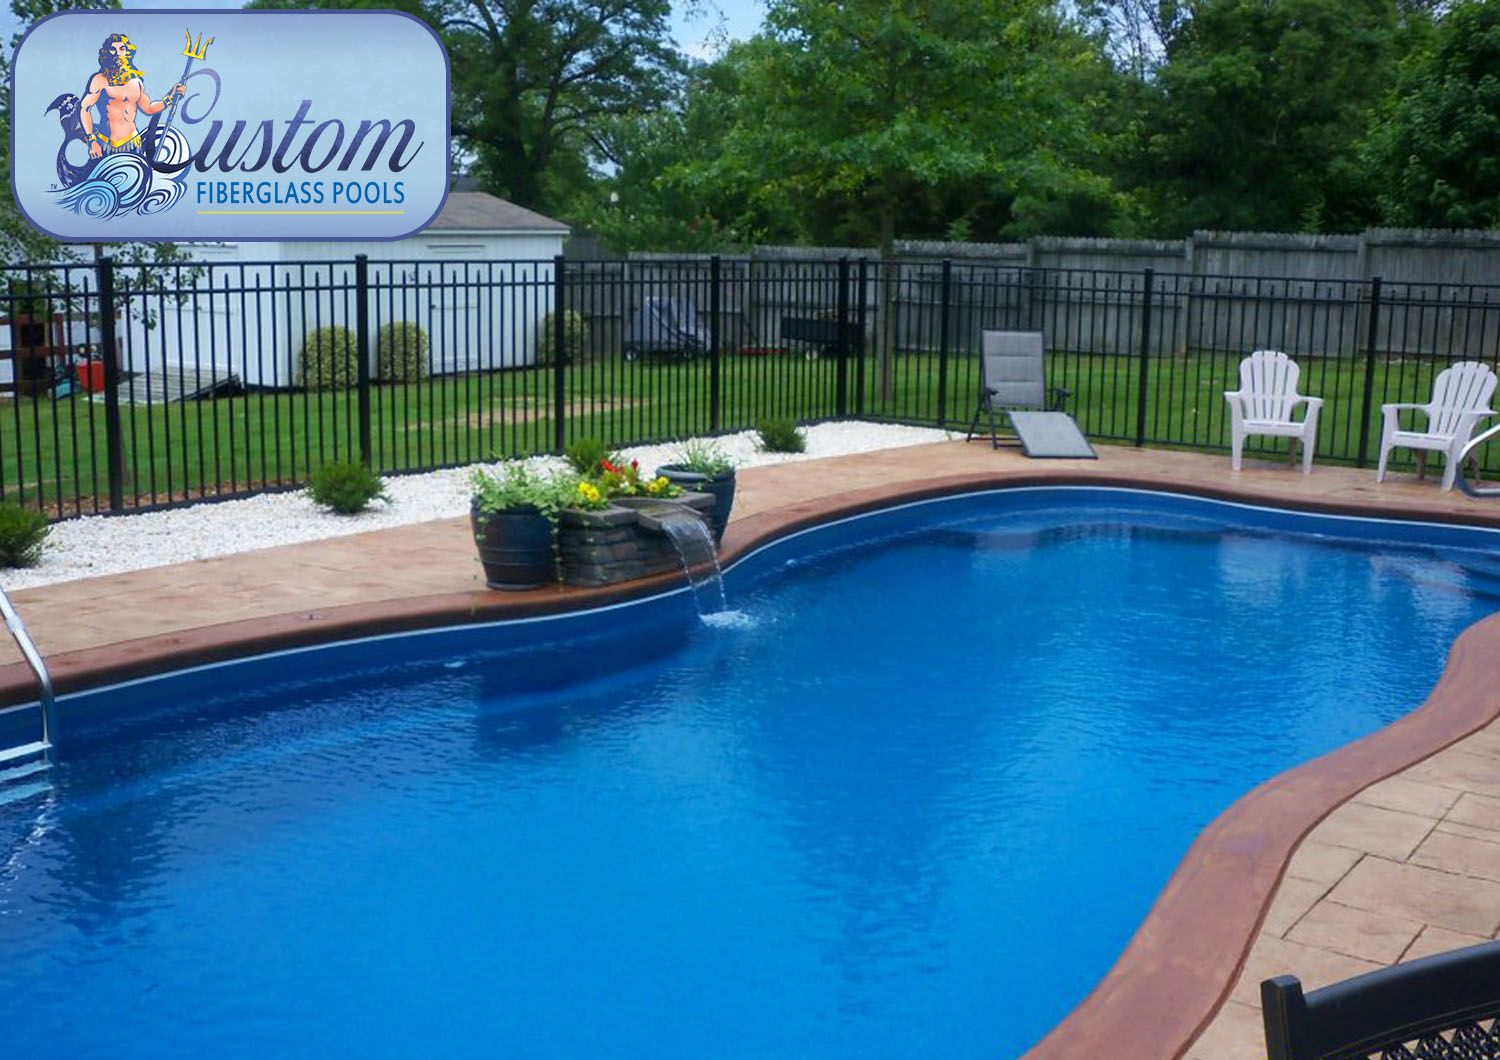 Tahiti 14x34 Awesome Pools is located in Apison Tennessee and